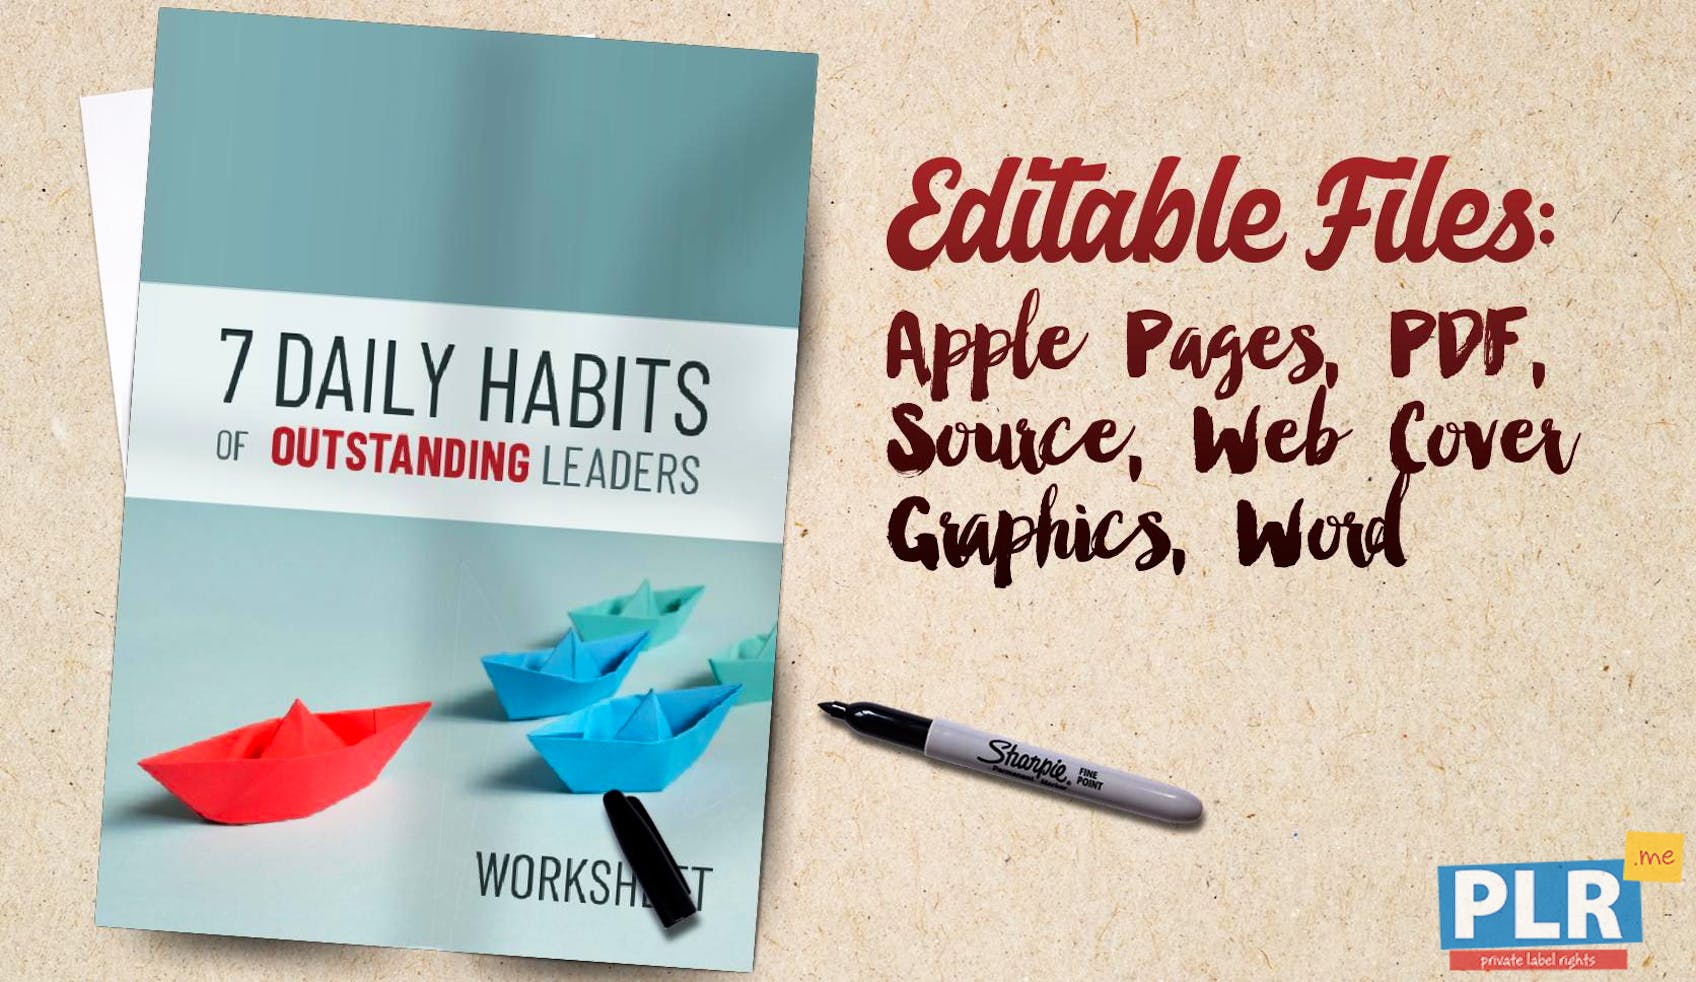 7 Daily Habits Of Outstanding Leaders Worksheet